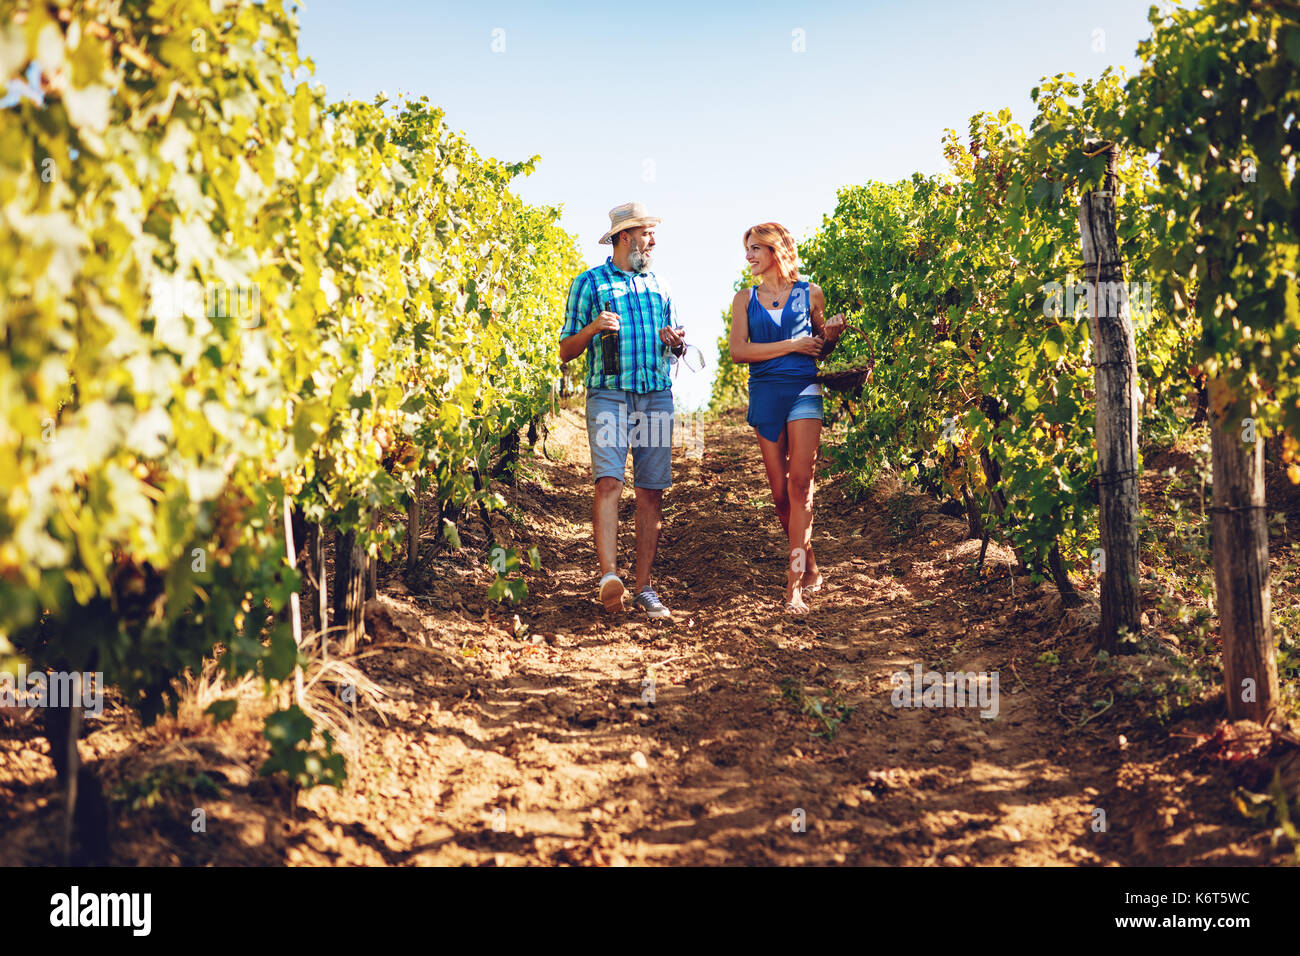 Beautiful smiling couple walking through a vineyard and tasting wine. - Stock Image